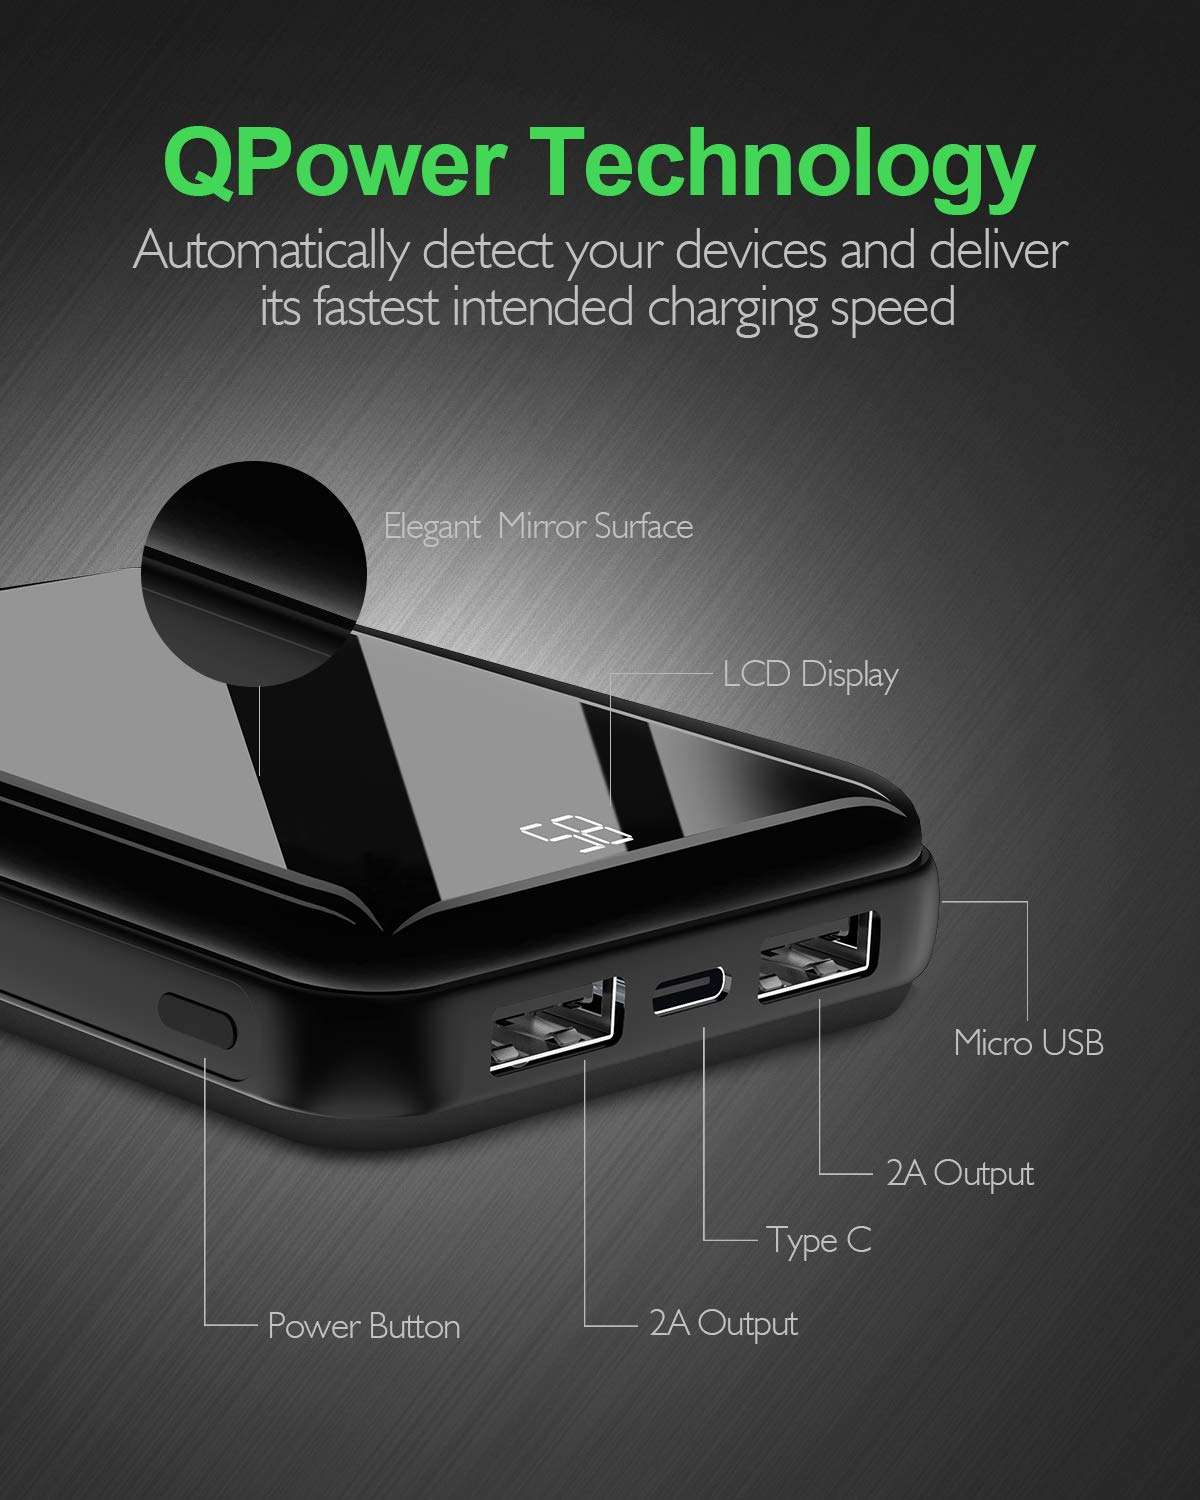 LCD Digital Display for Smart Devices Android Phone USB C /& Micro Power Bank X-DRAGON 25000mAh Portable Phone Charger Battery Pack Backup High Capacity External Battery with Dual Inputs /& Outputs